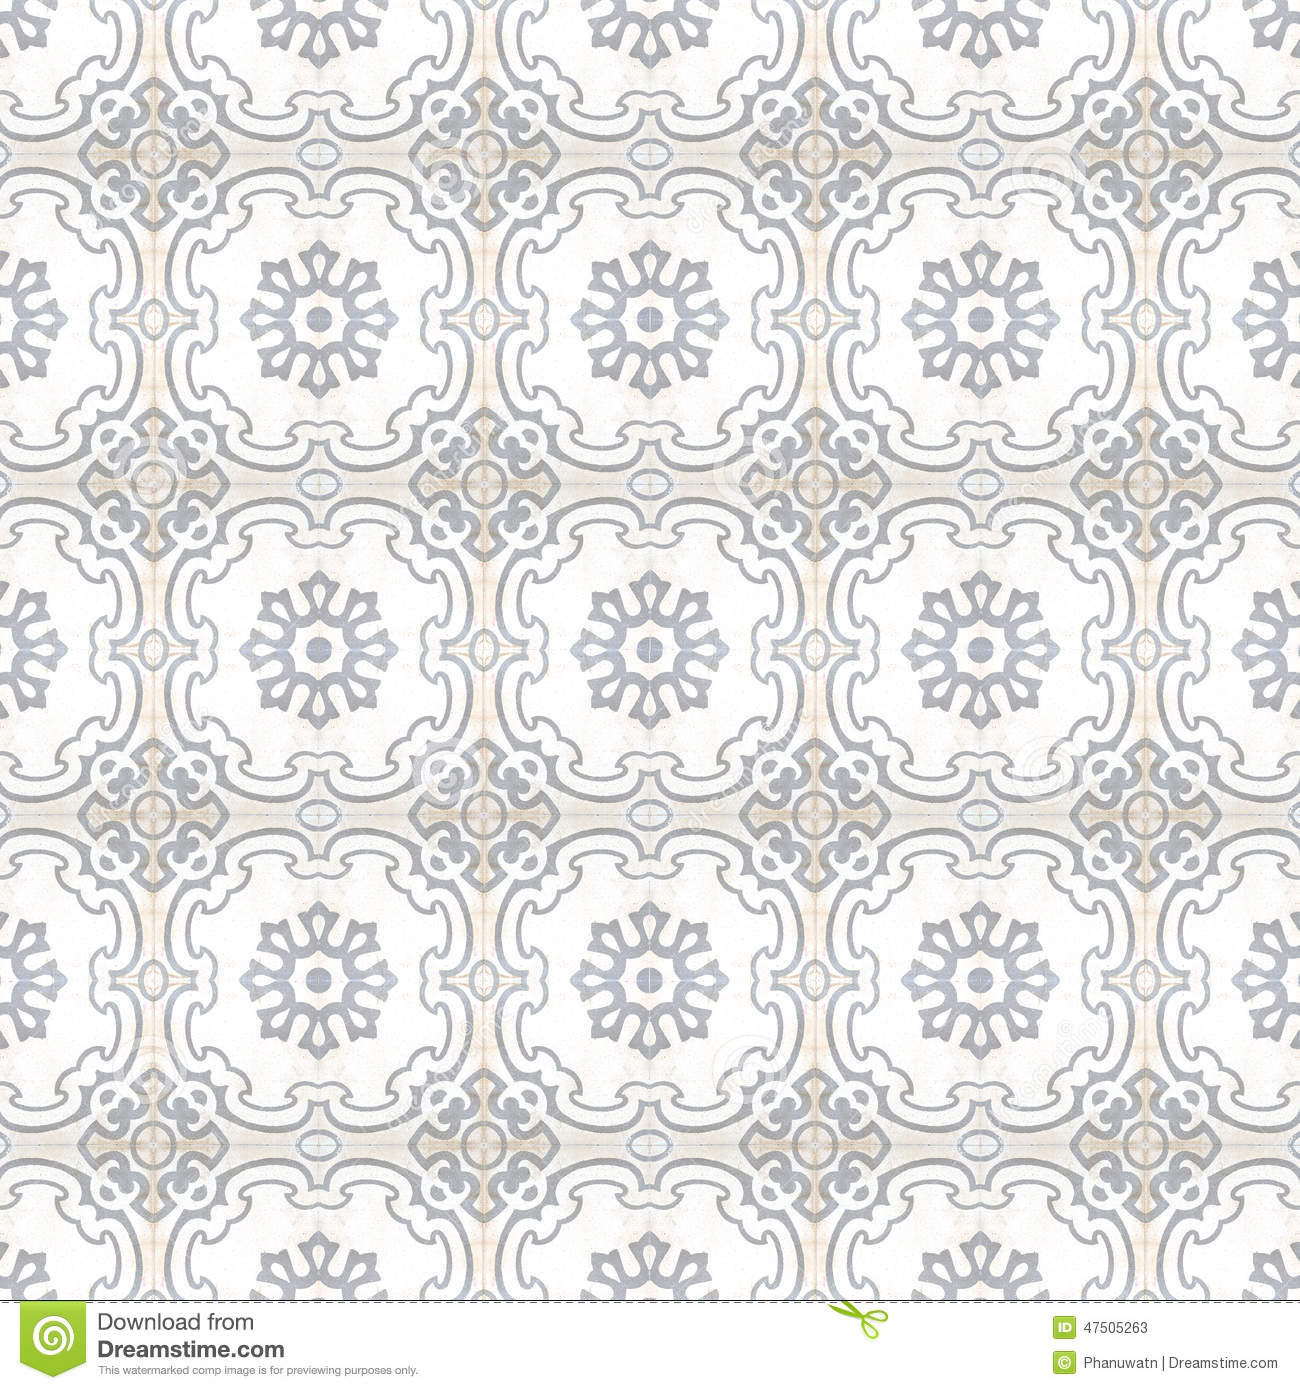 Vintage Style Floor Tile Pattern Texture Stock Image - Image of ...